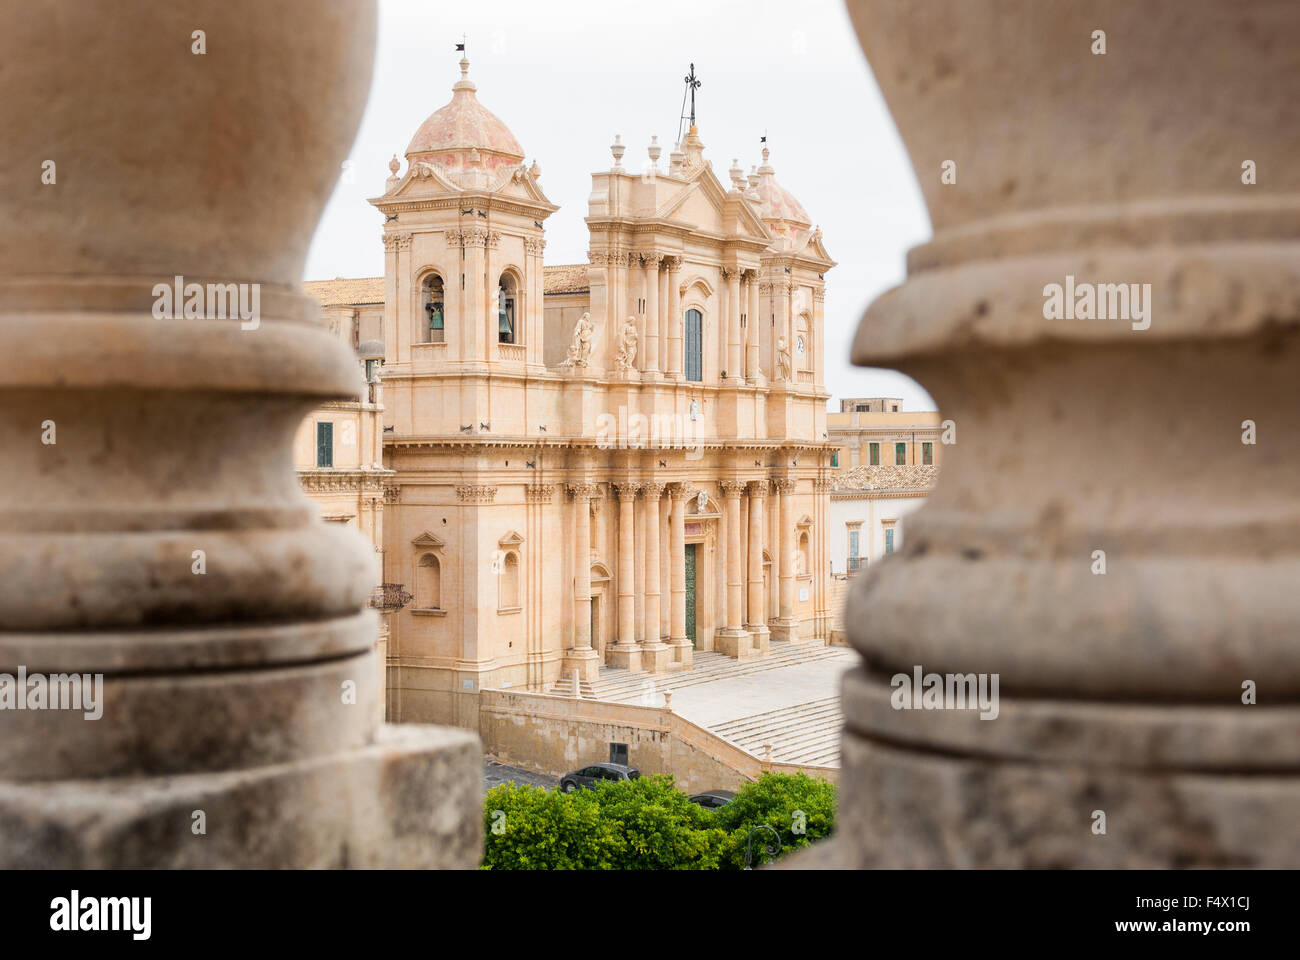 The baroque cathedral of Noto (UNESCO site in Sicily), seen through two columns - Stock Image